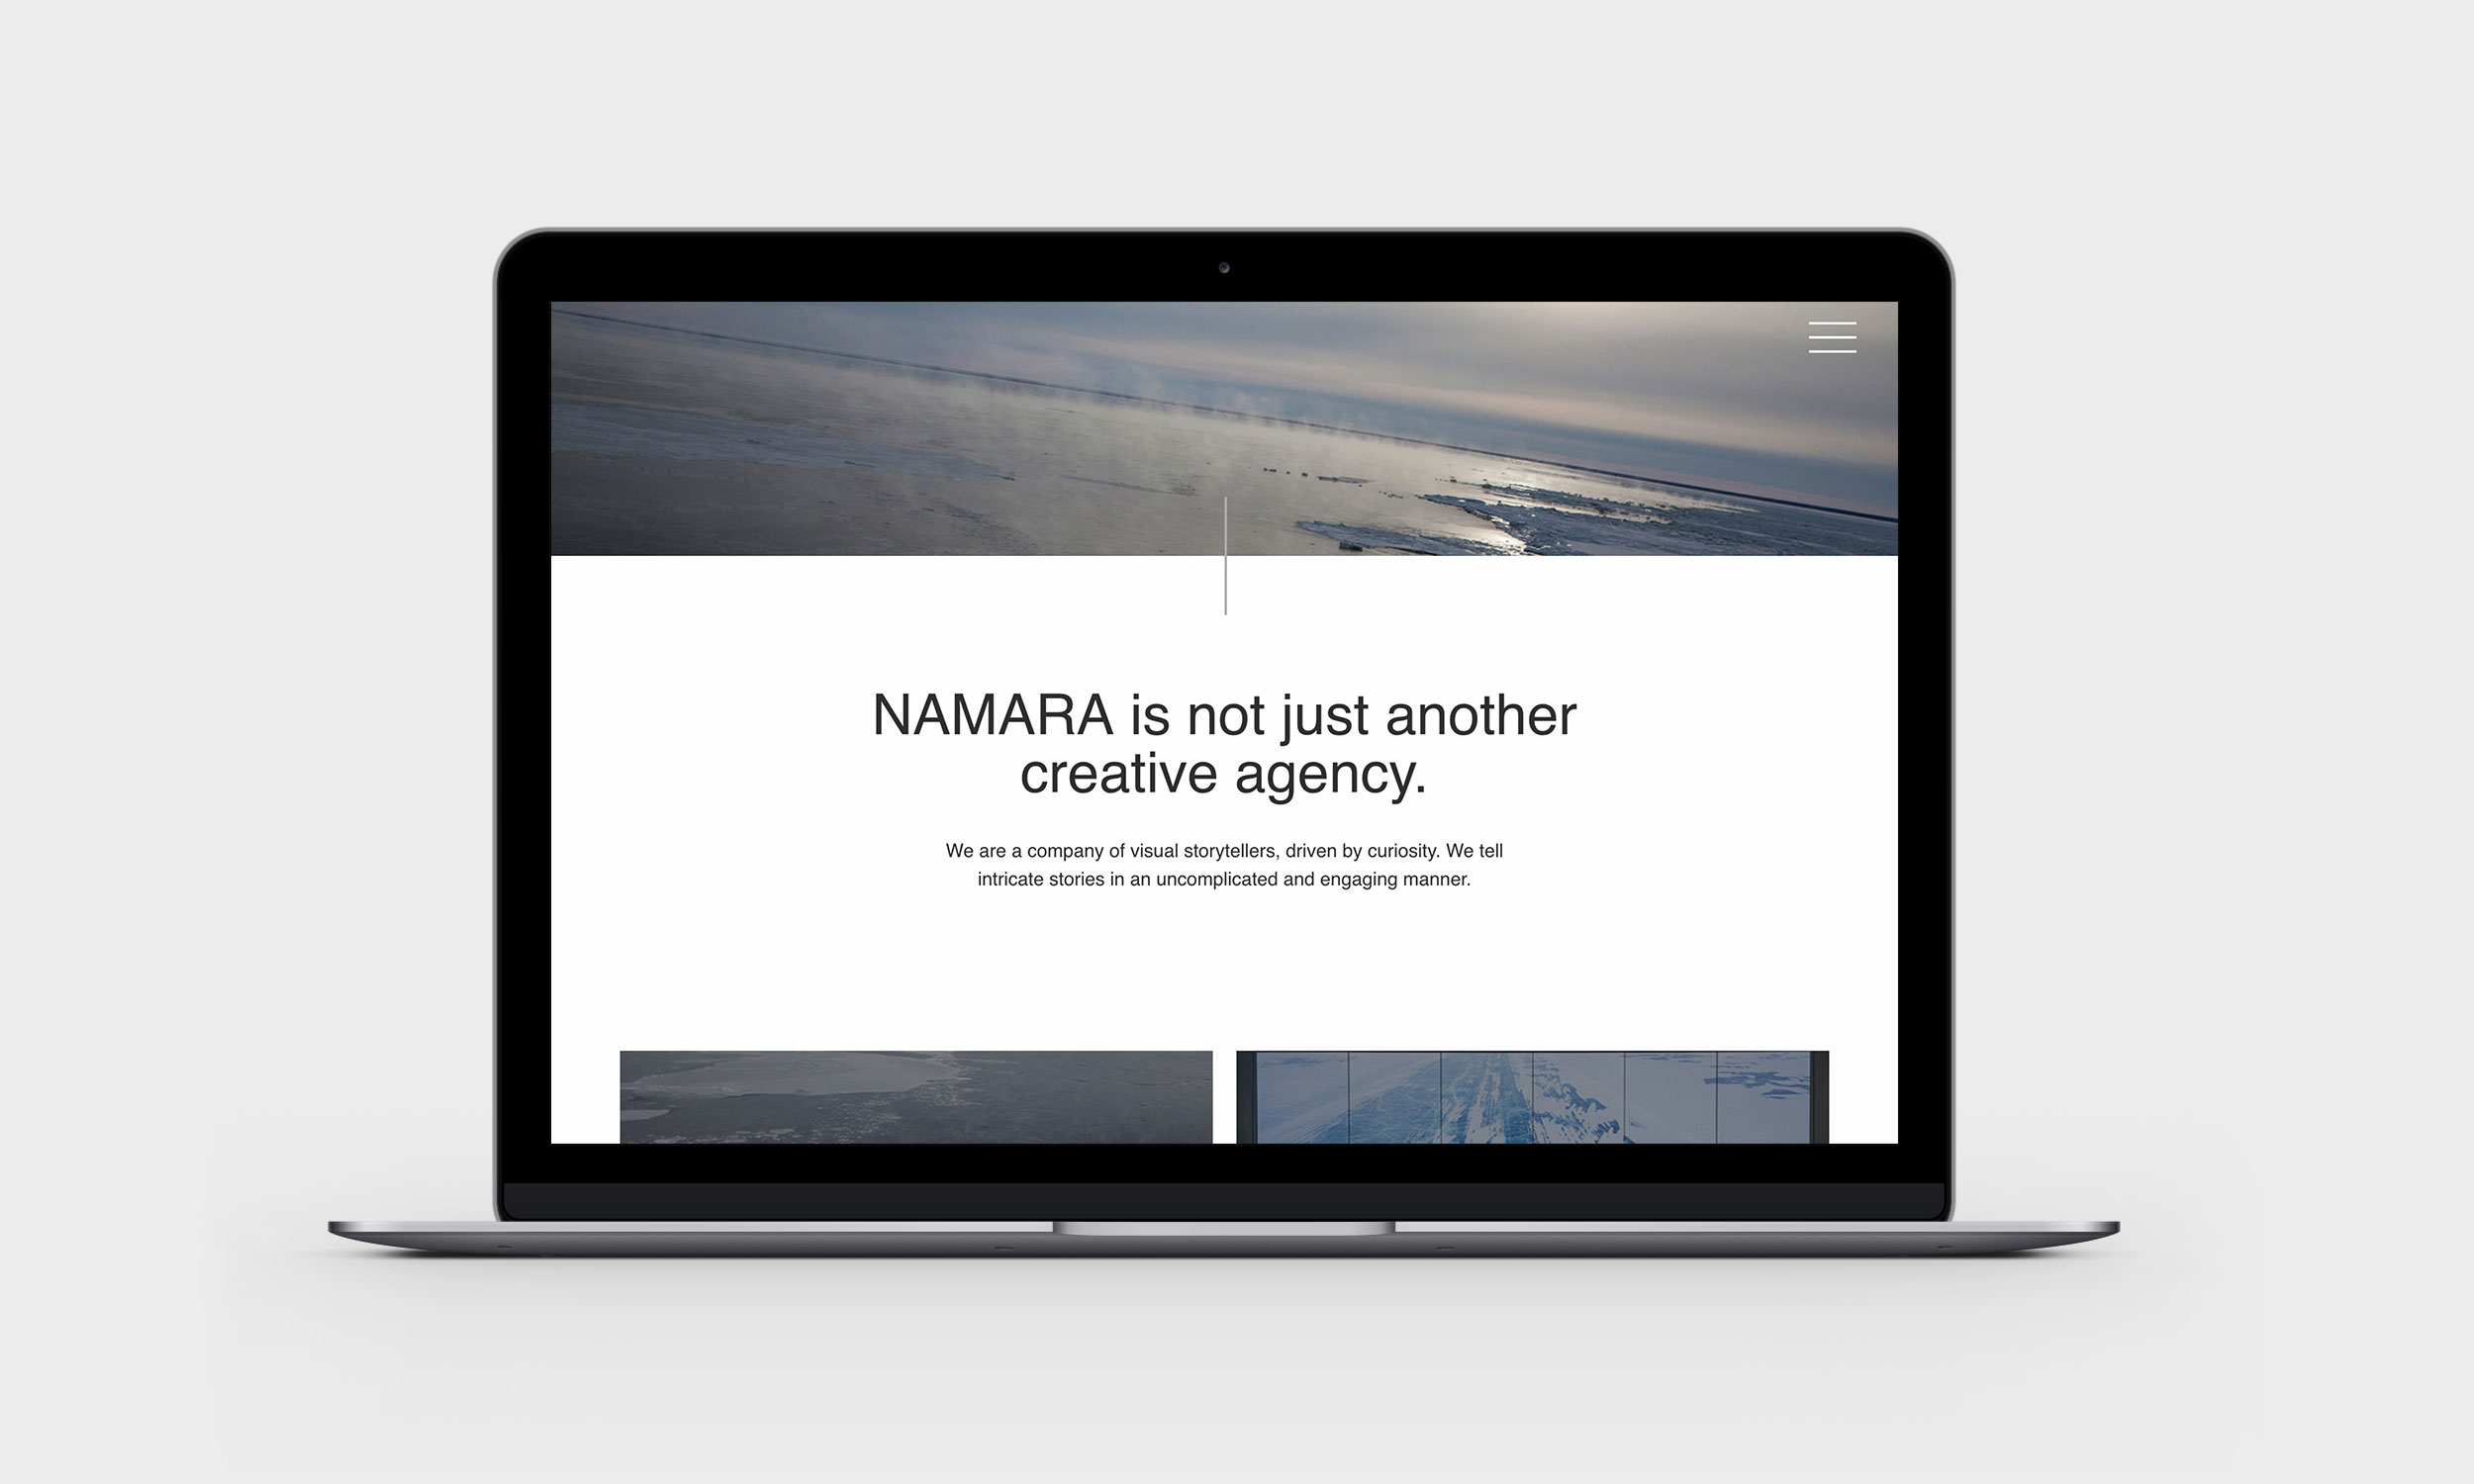 NAMARA_MacBook_02a.jpg